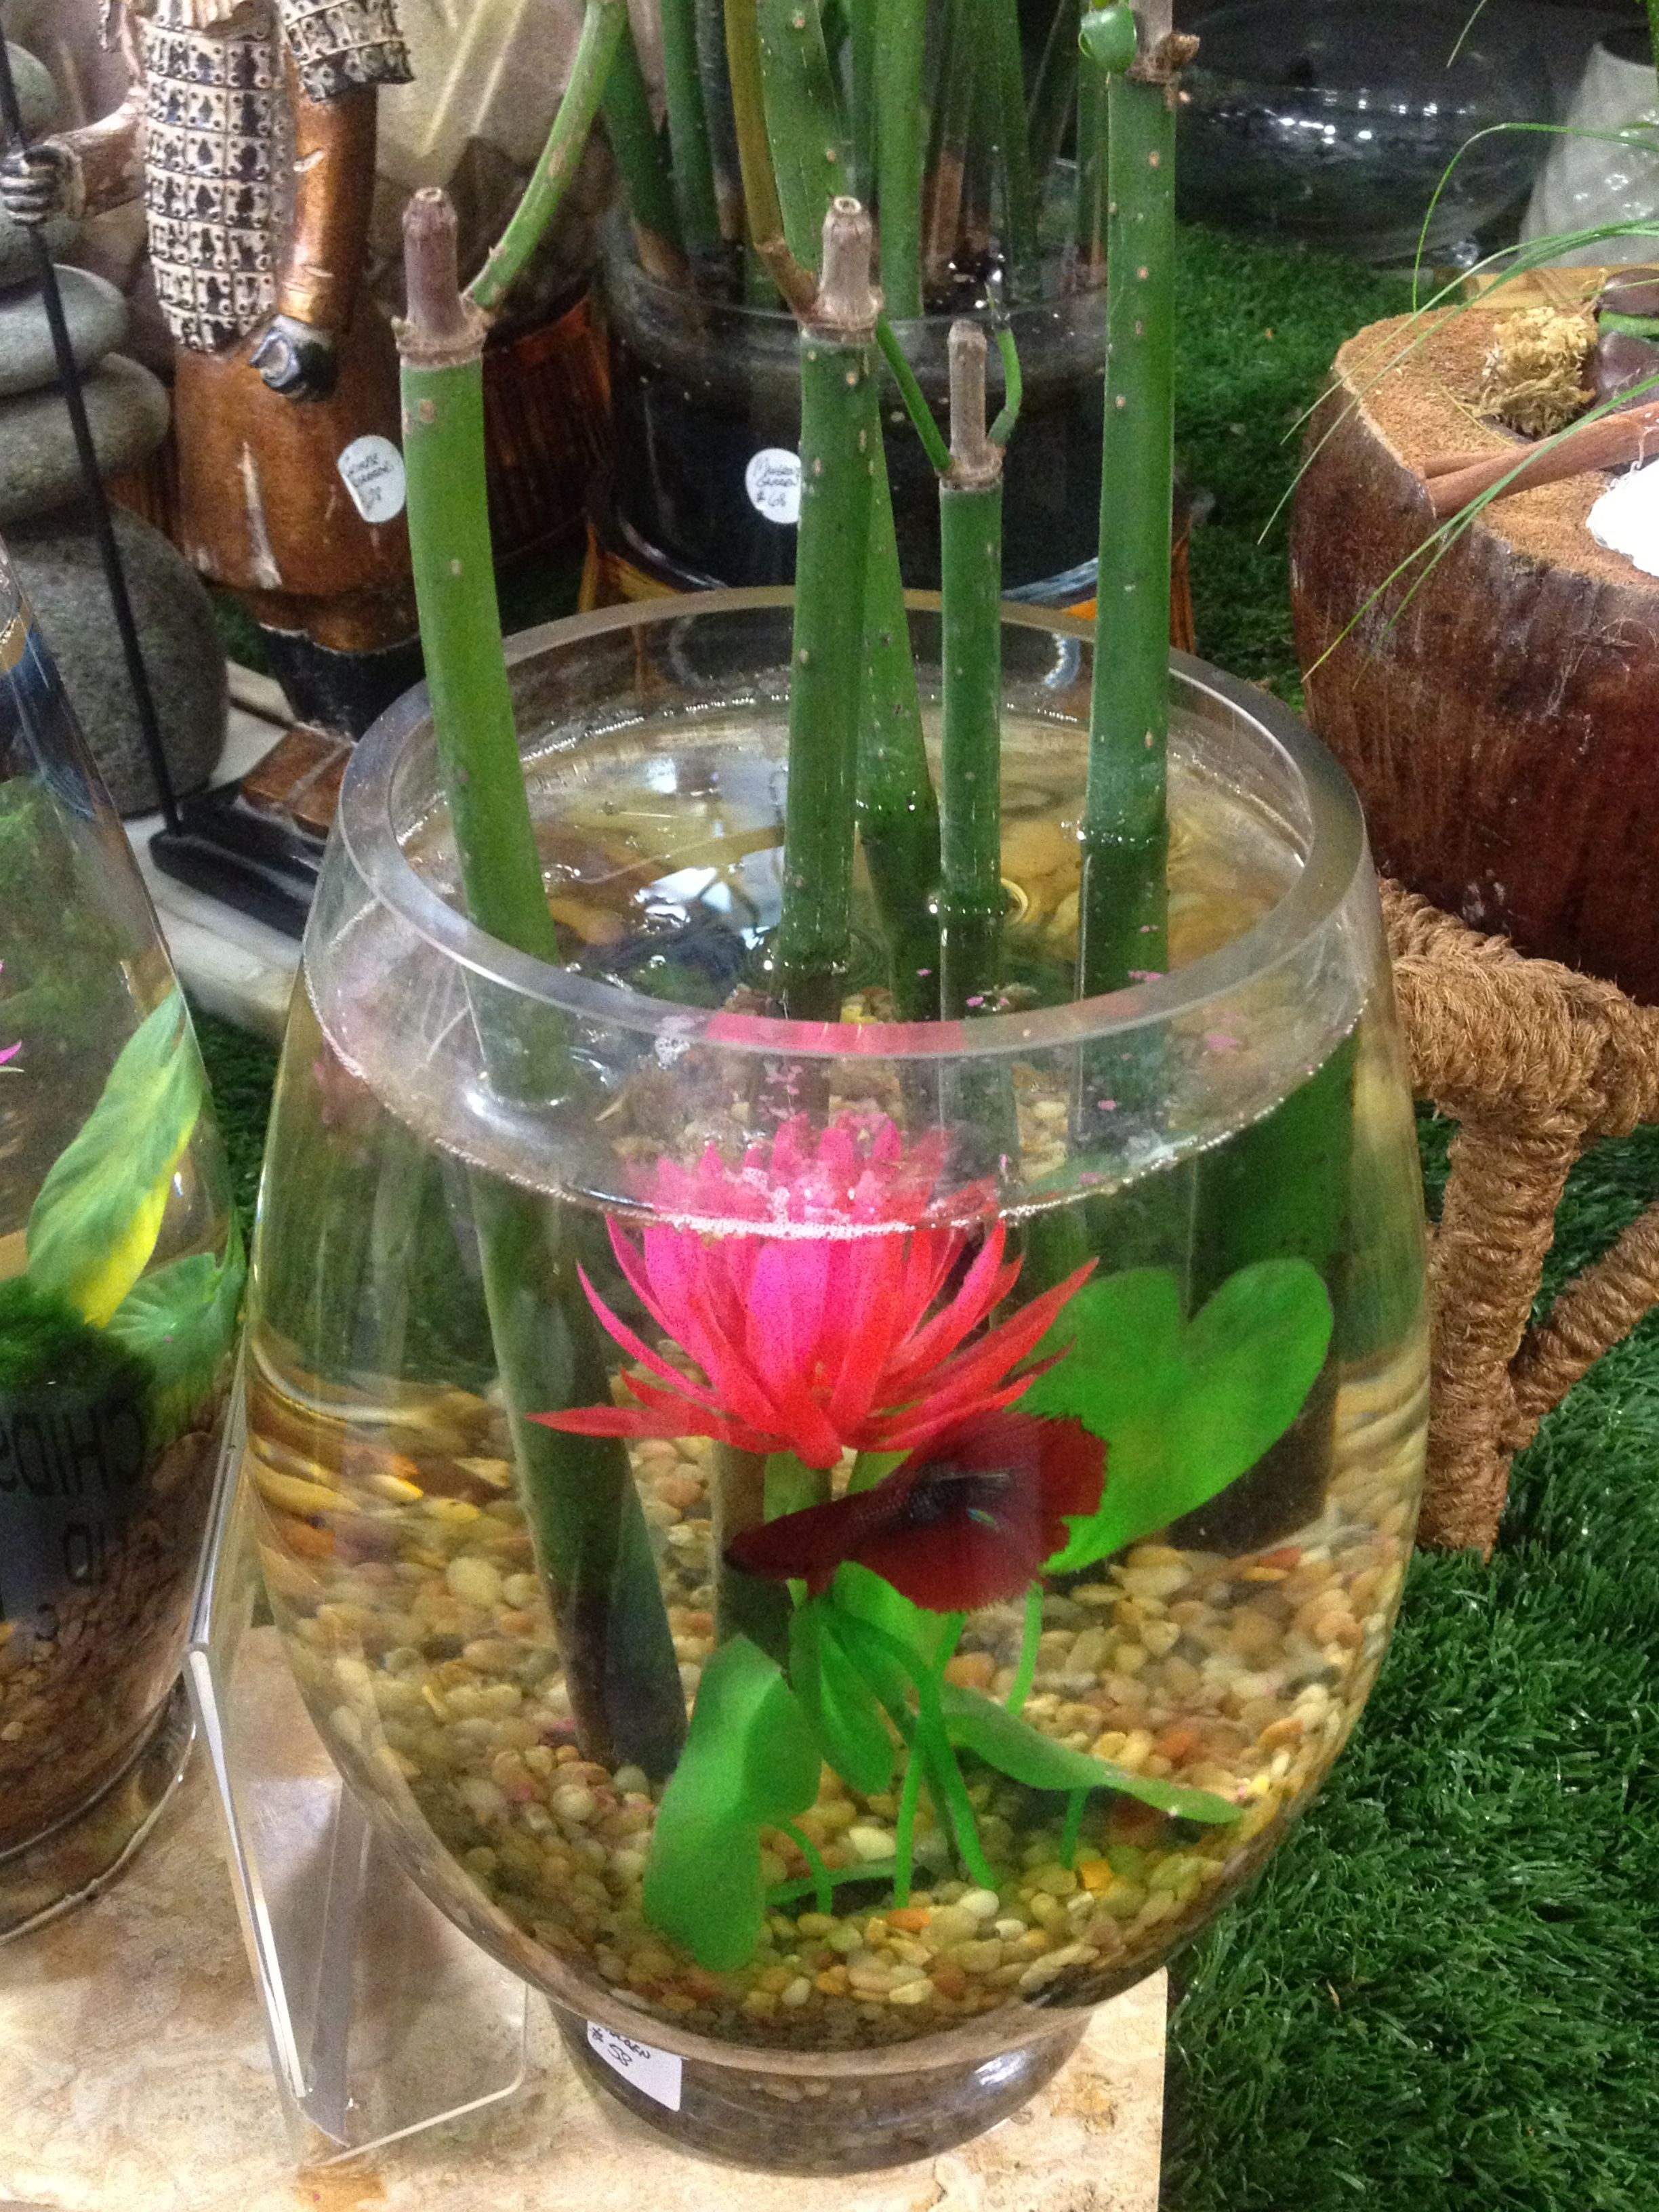 Share - Cool ideas for a fish tank ...